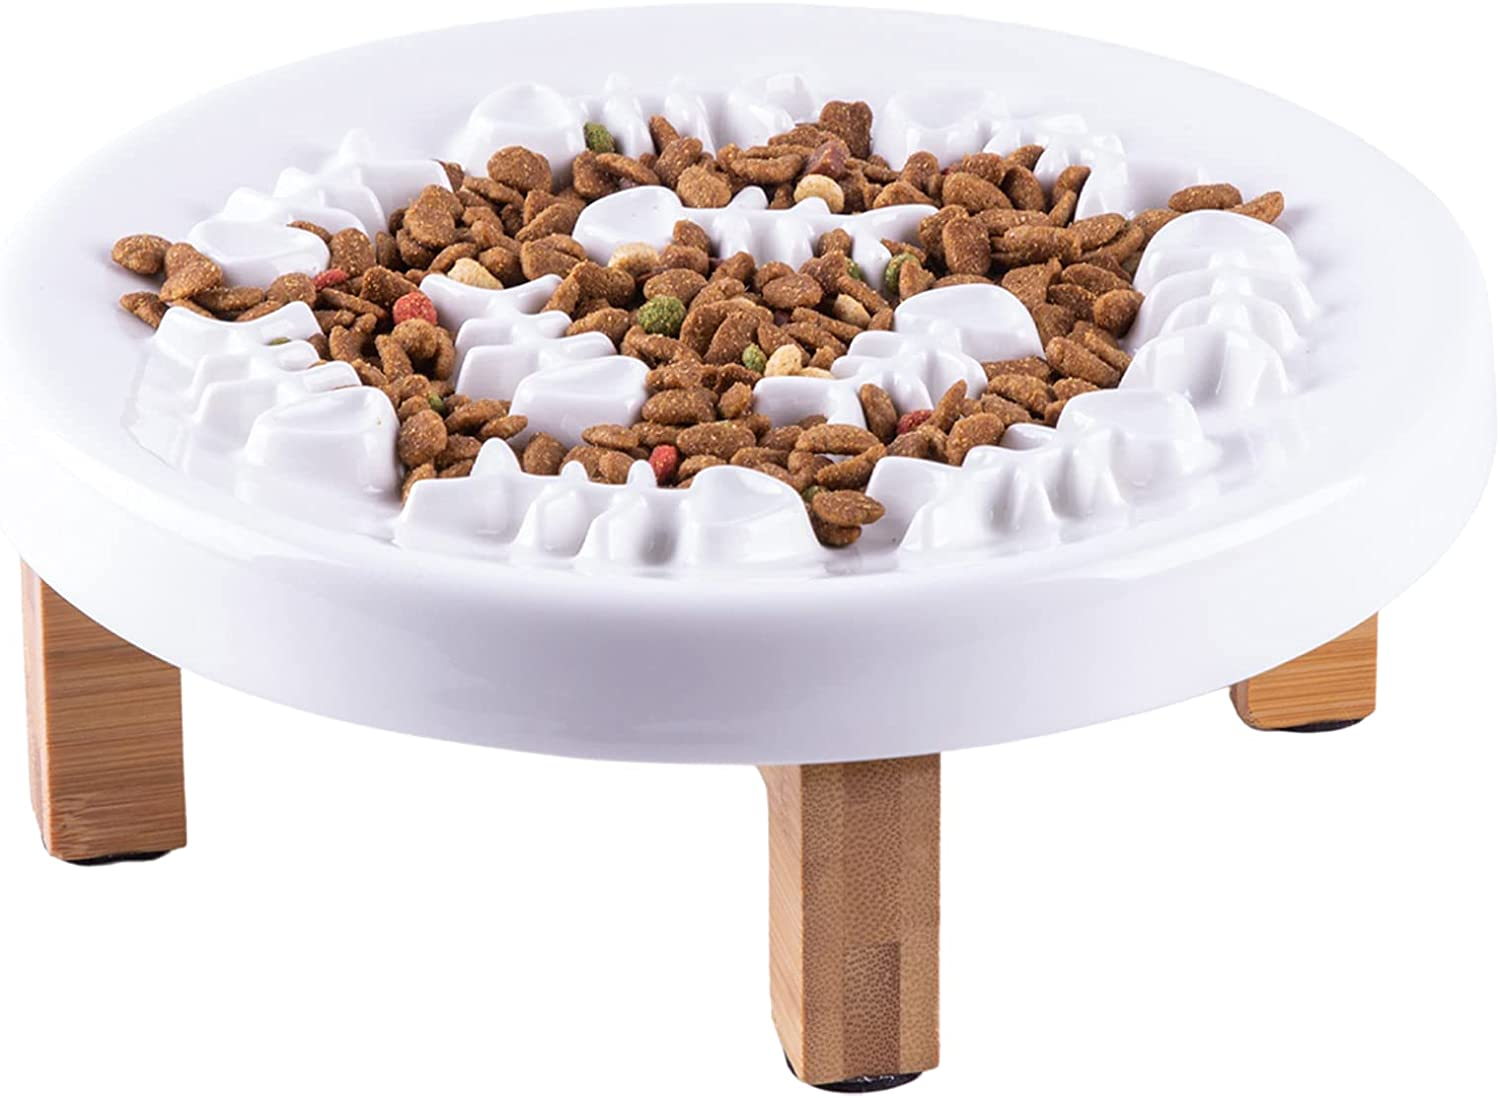 Fatcatjoy Slow Feeder Dog Bowls Cat Food Puzzle Large Ceramic Plate Bowl with Wood Stand Gobble Stopper Interactive Cat Feeder Fish Bones Insert Bowl for Slow Eating